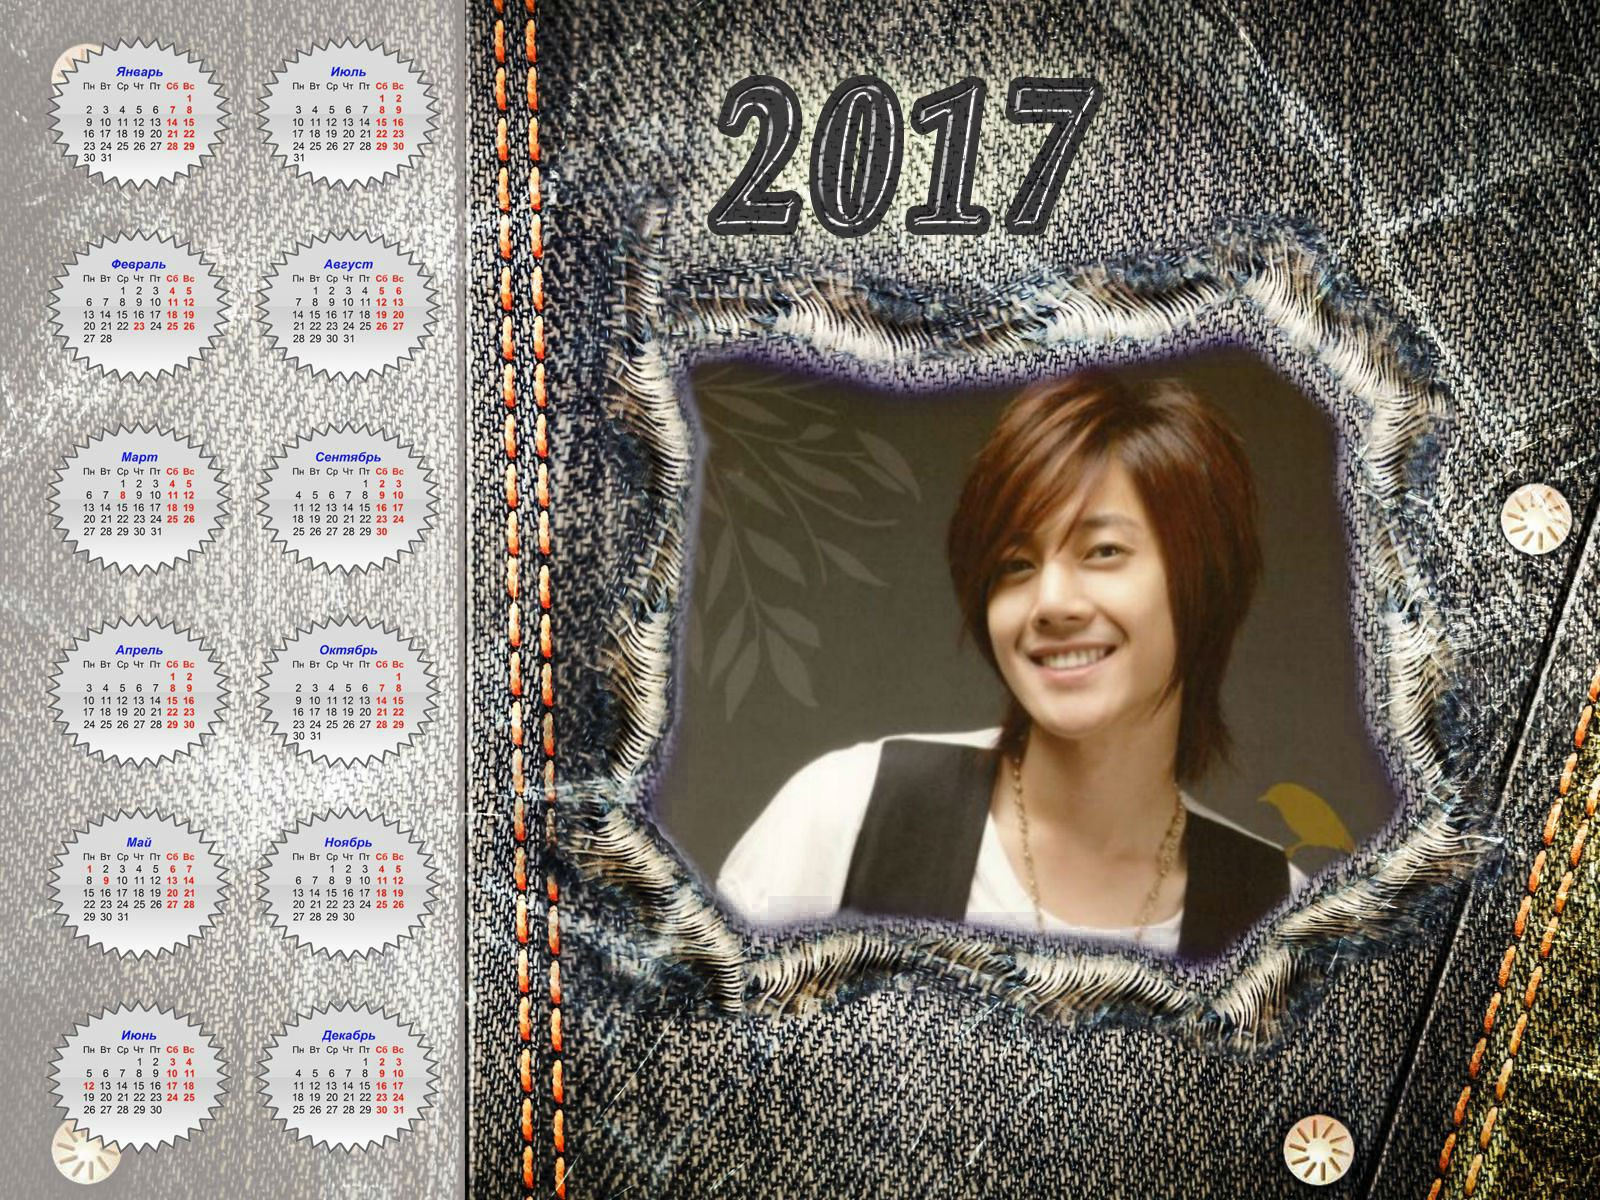 Fanart - 2017 Calendar of KHJ by Tatyana Popova and Dl Leshina